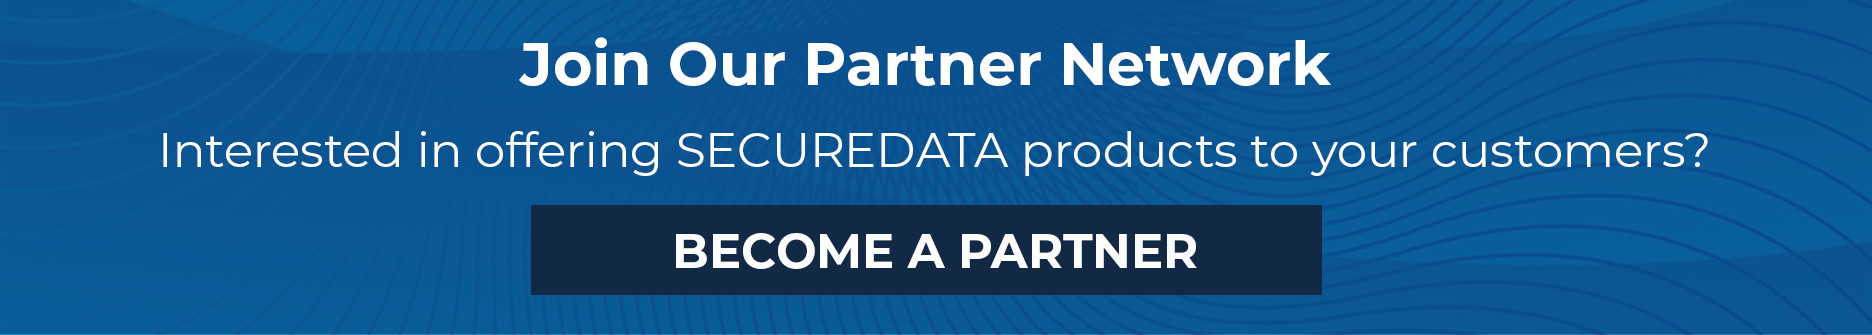 Join Our Partner Network